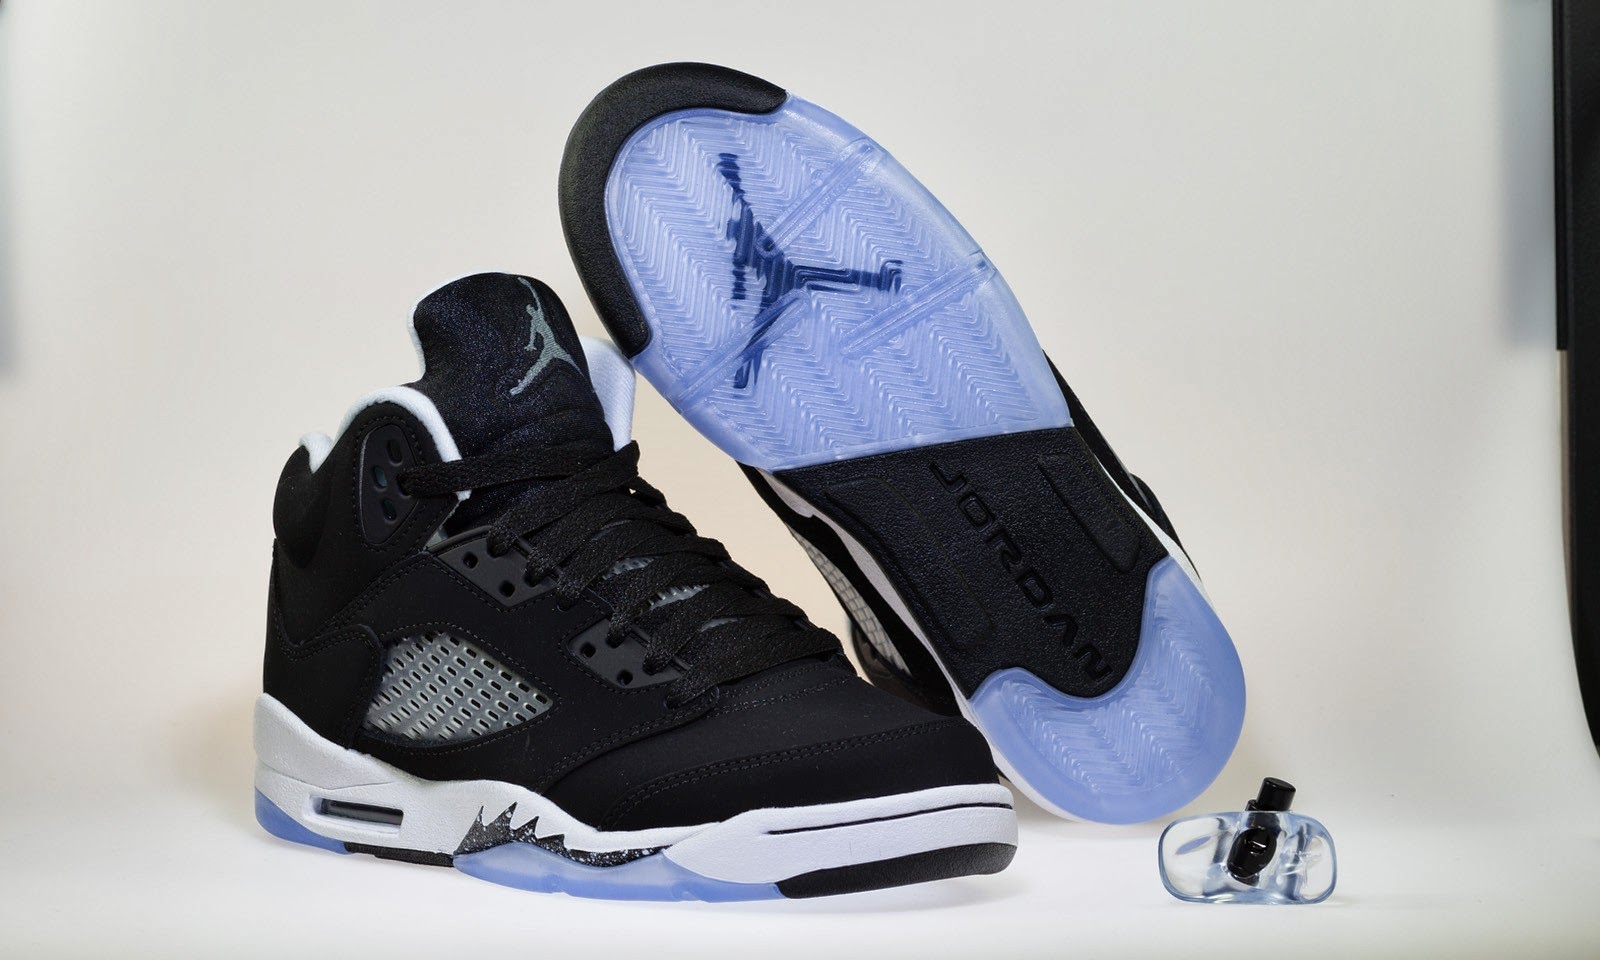 salomon moc rx - Nike Air Jordan 5 Retro - HD wallpaper